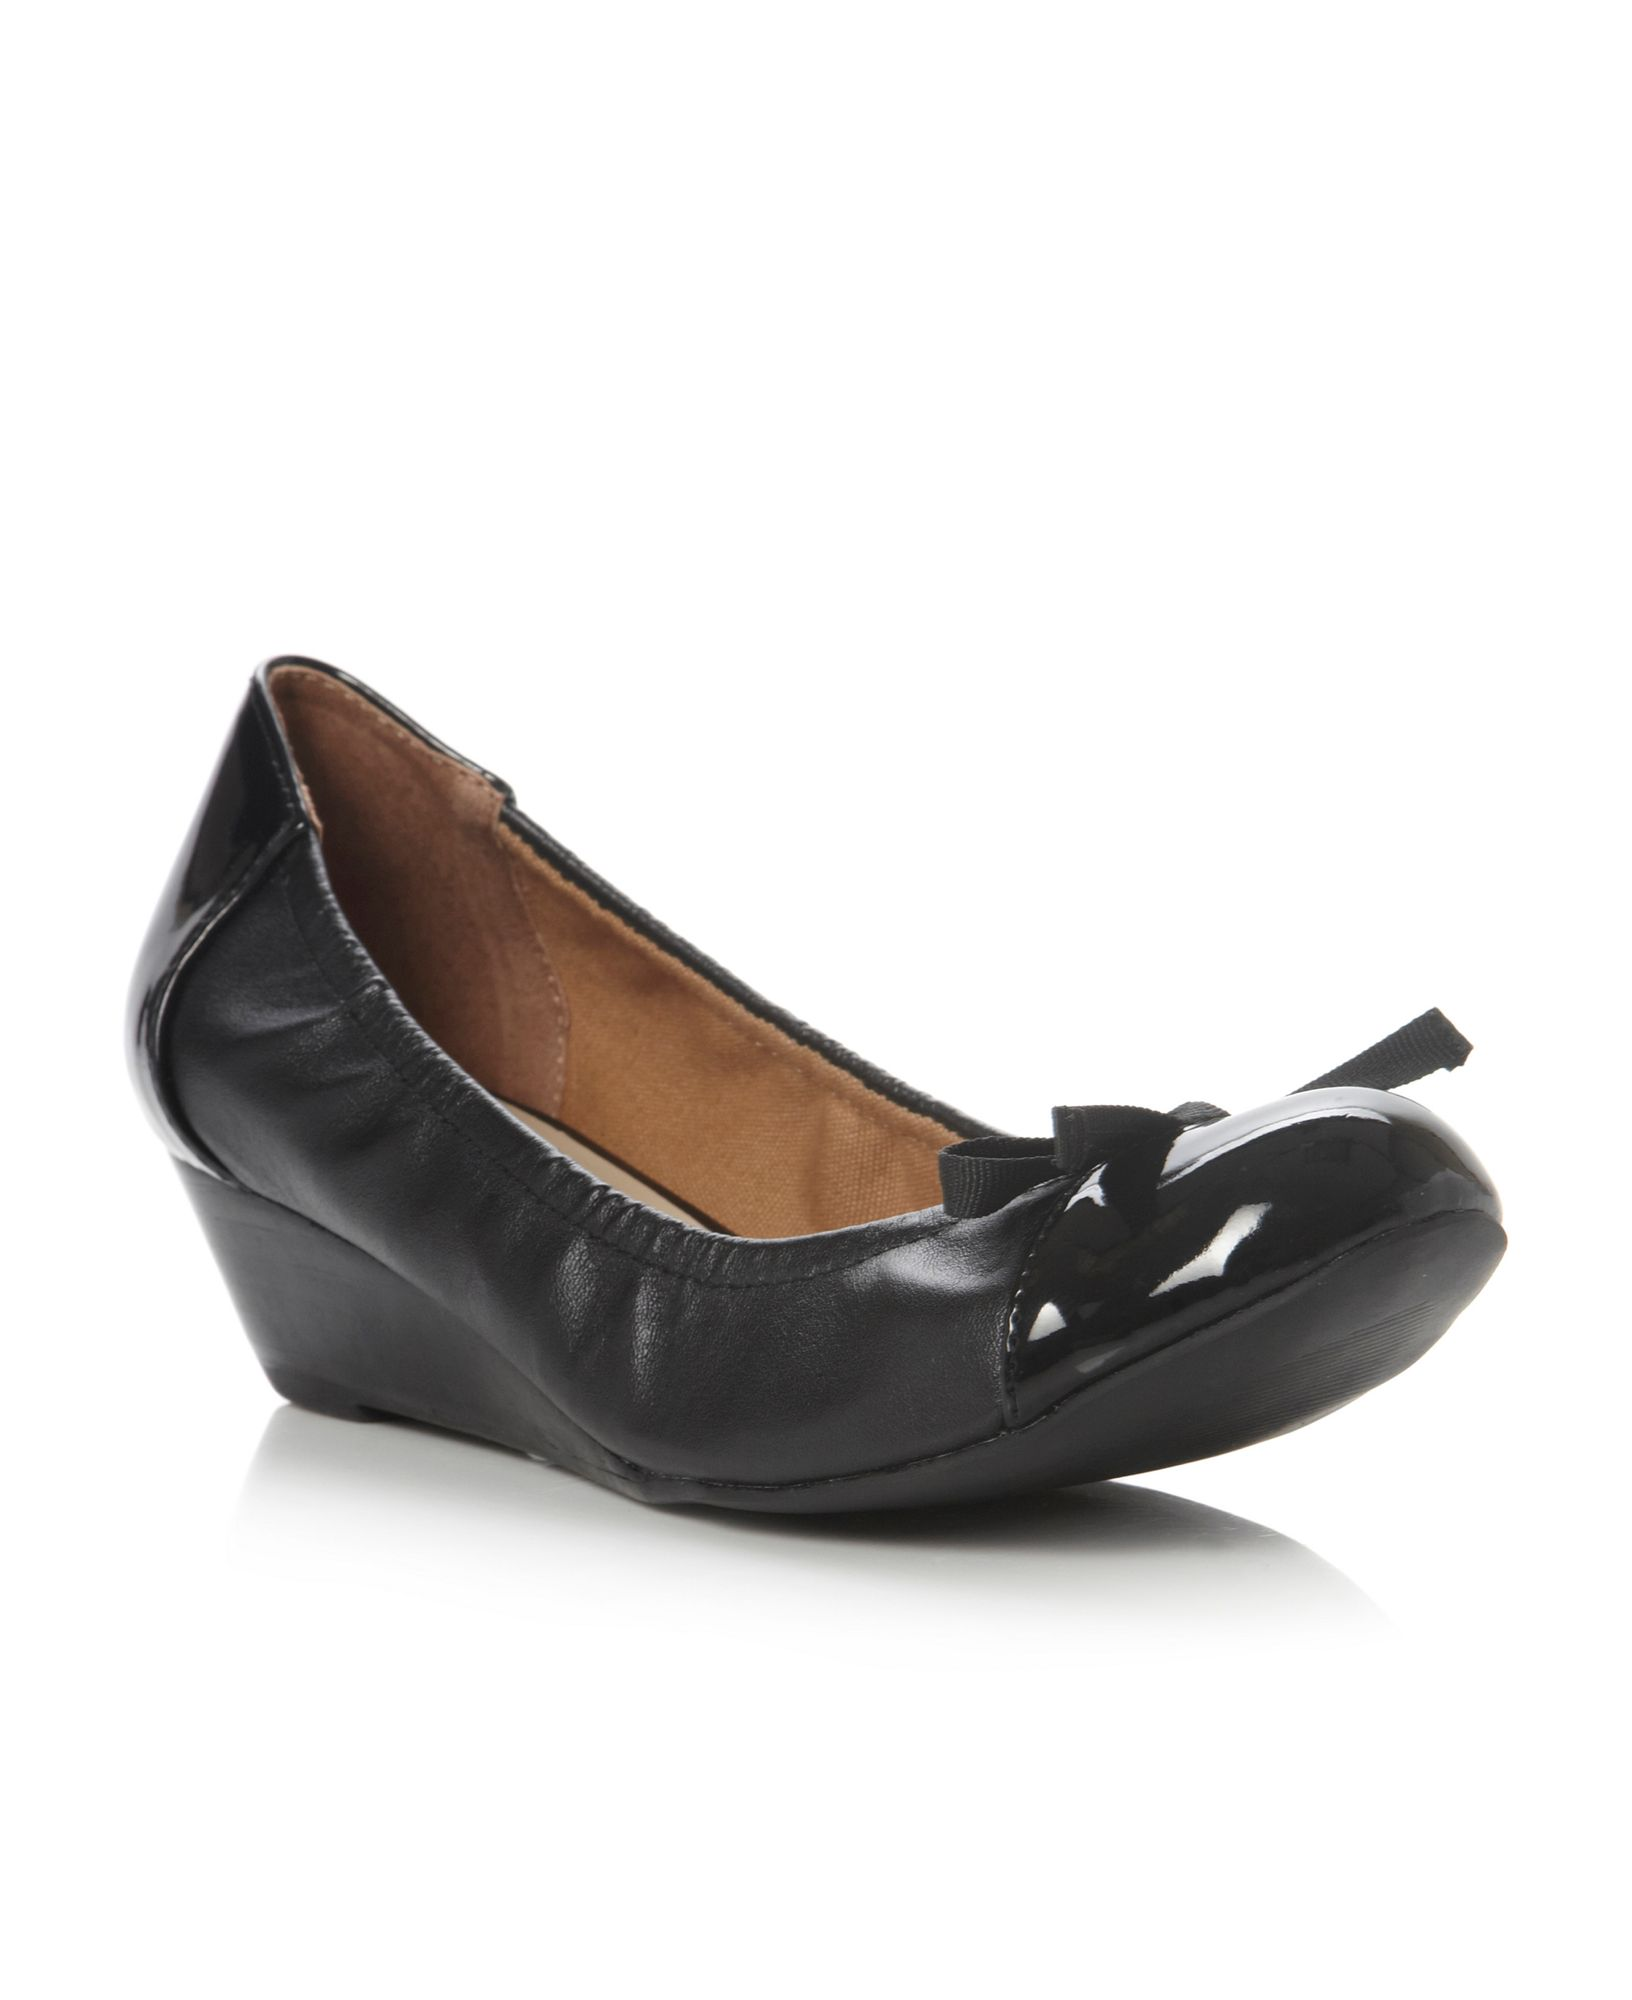 linea argyle bow trim low heel wedge shoes in black lyst